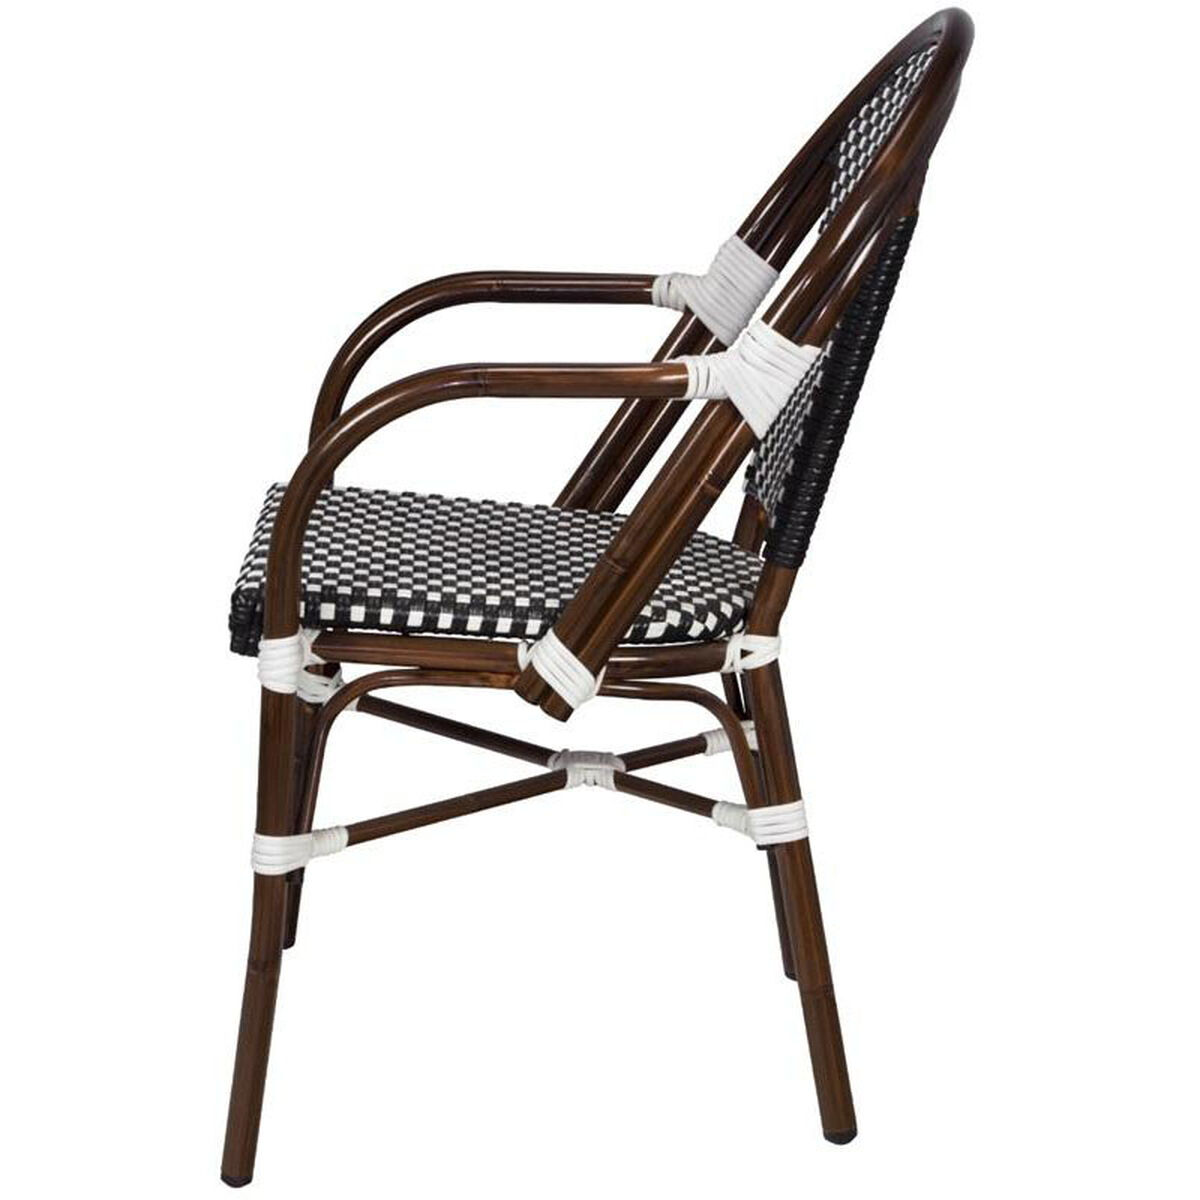 paris outdoor stacking arm chair. Black Bedroom Furniture Sets. Home Design Ideas